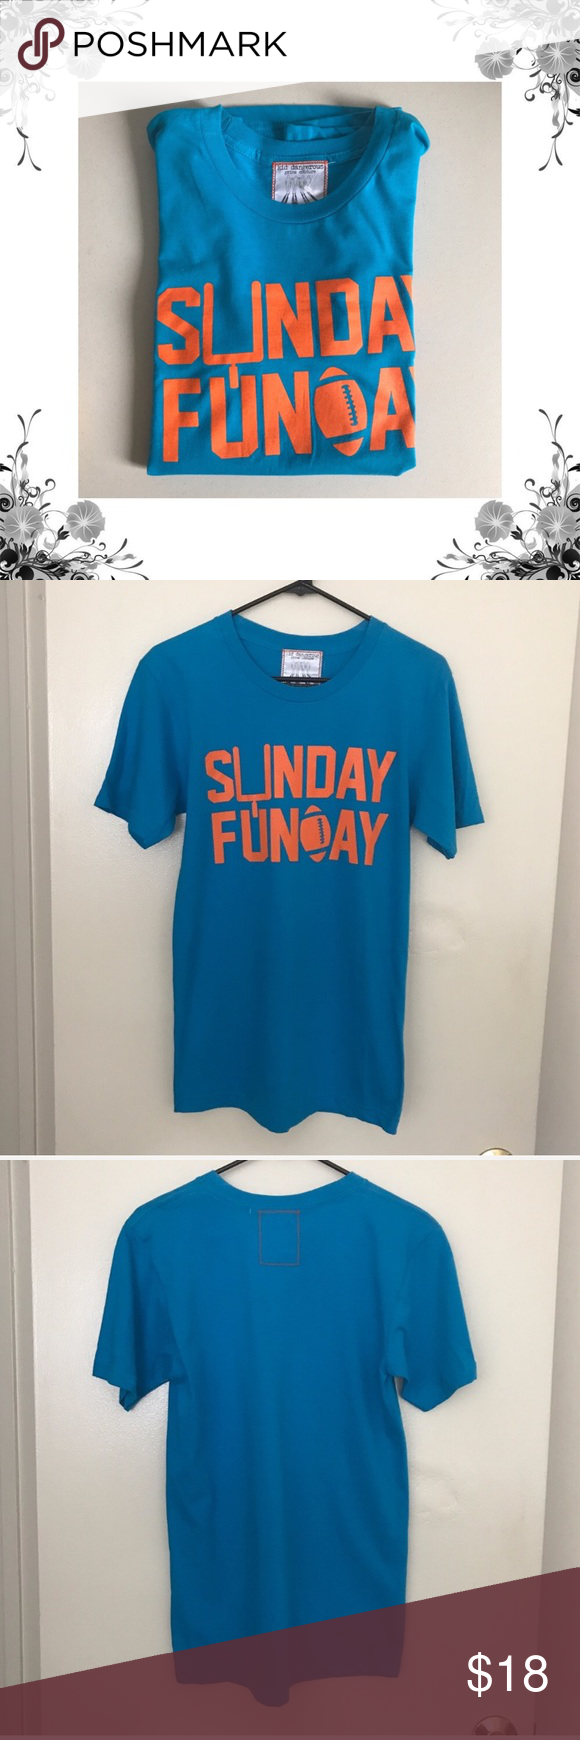 dfdce3e26 {Kid Dangerous} Sunday Funday Graphic Tee NWOT 100% Cotton. Soft graphic tee.  Bright blue with neon orange lettering. Sunday Funday, football!